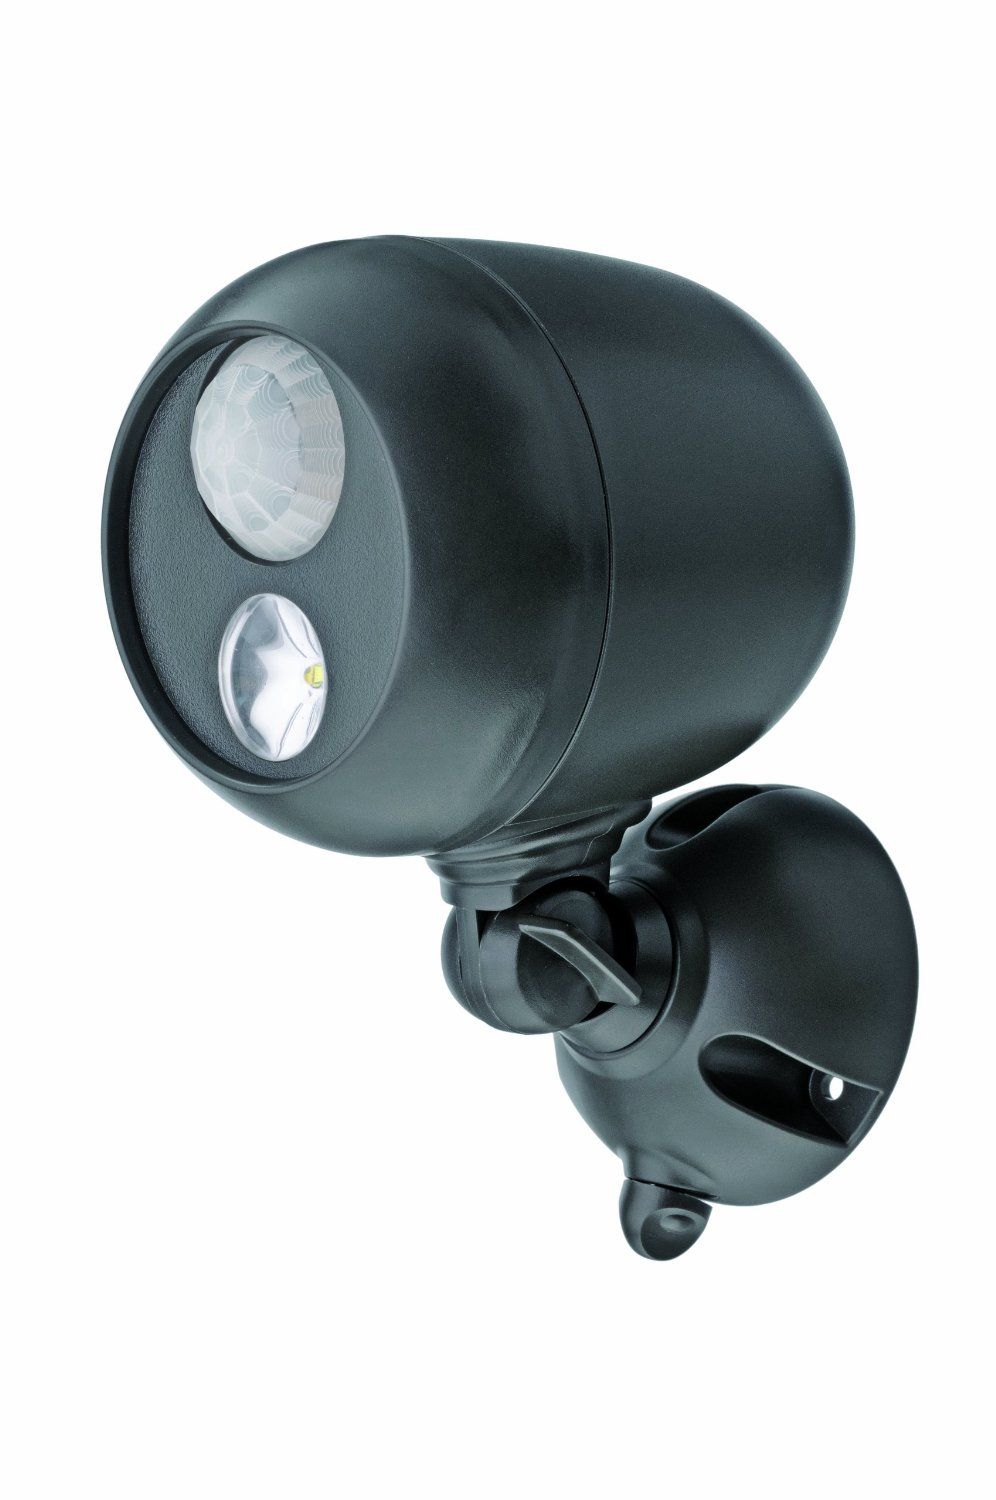 Online store america security surveillance mr beams wireless security systems mozeypictures Images